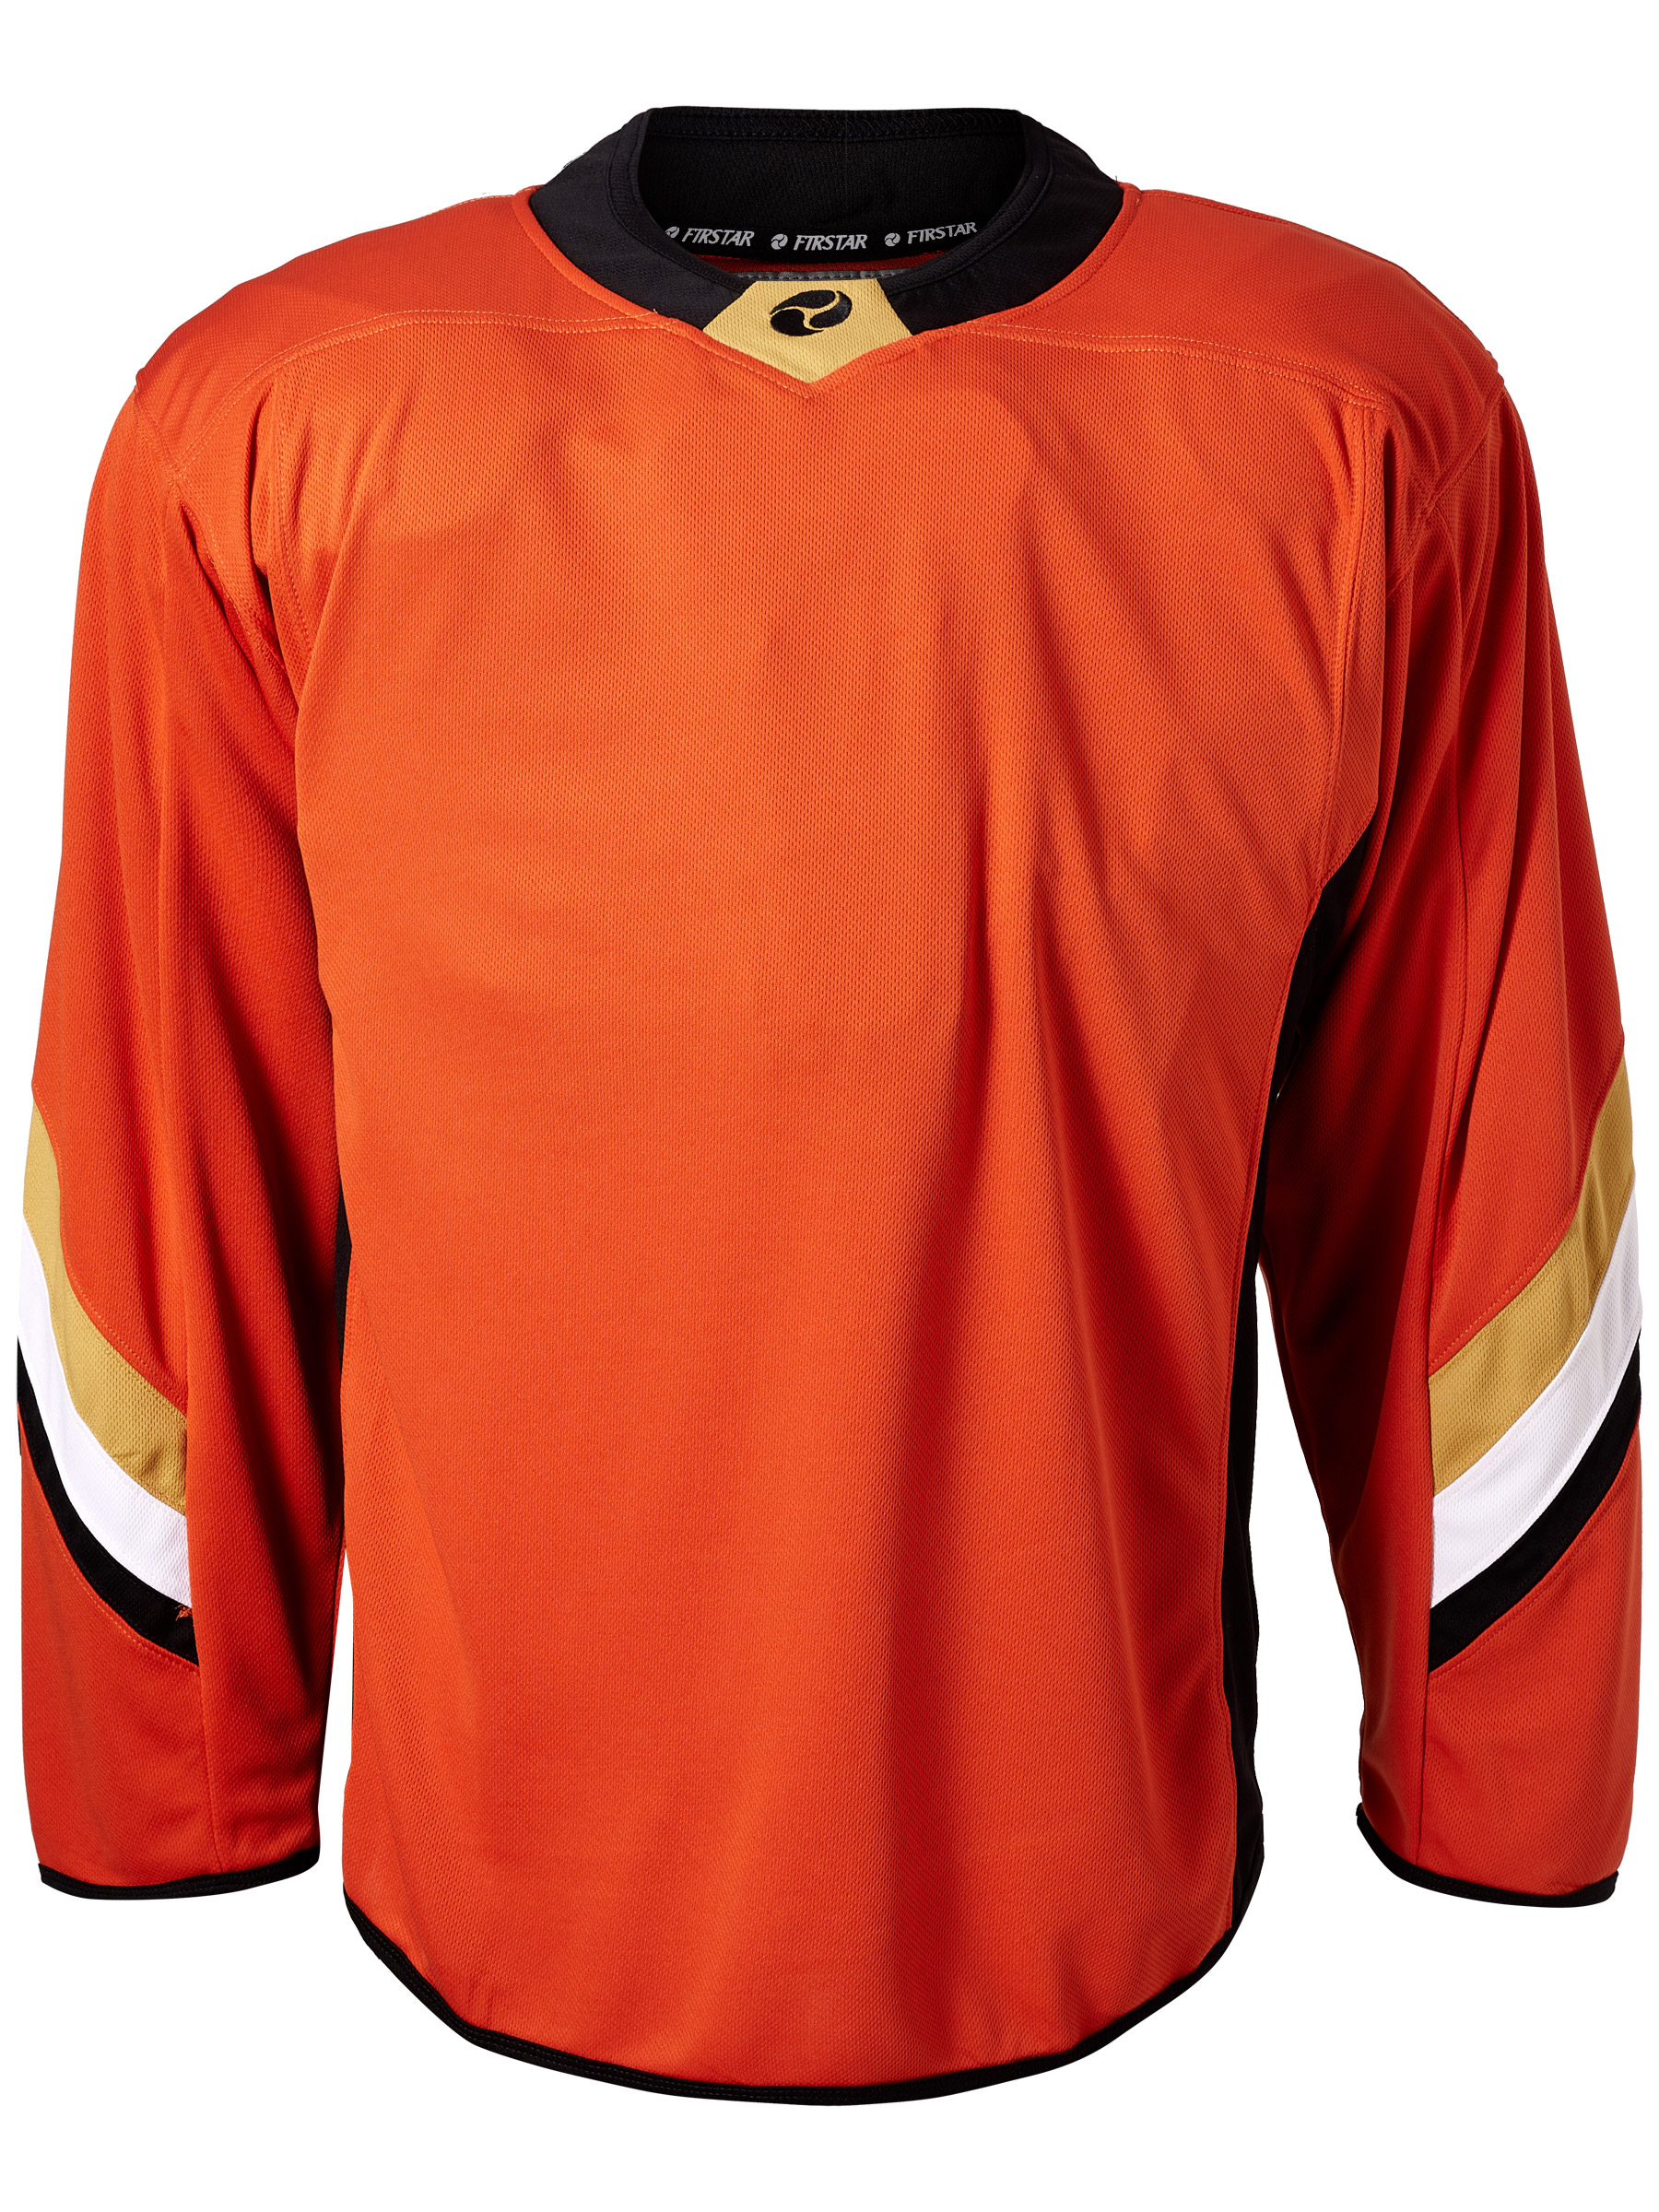 Firstar-Gamewear-Jersey-Anaheim-Orange.jpeg